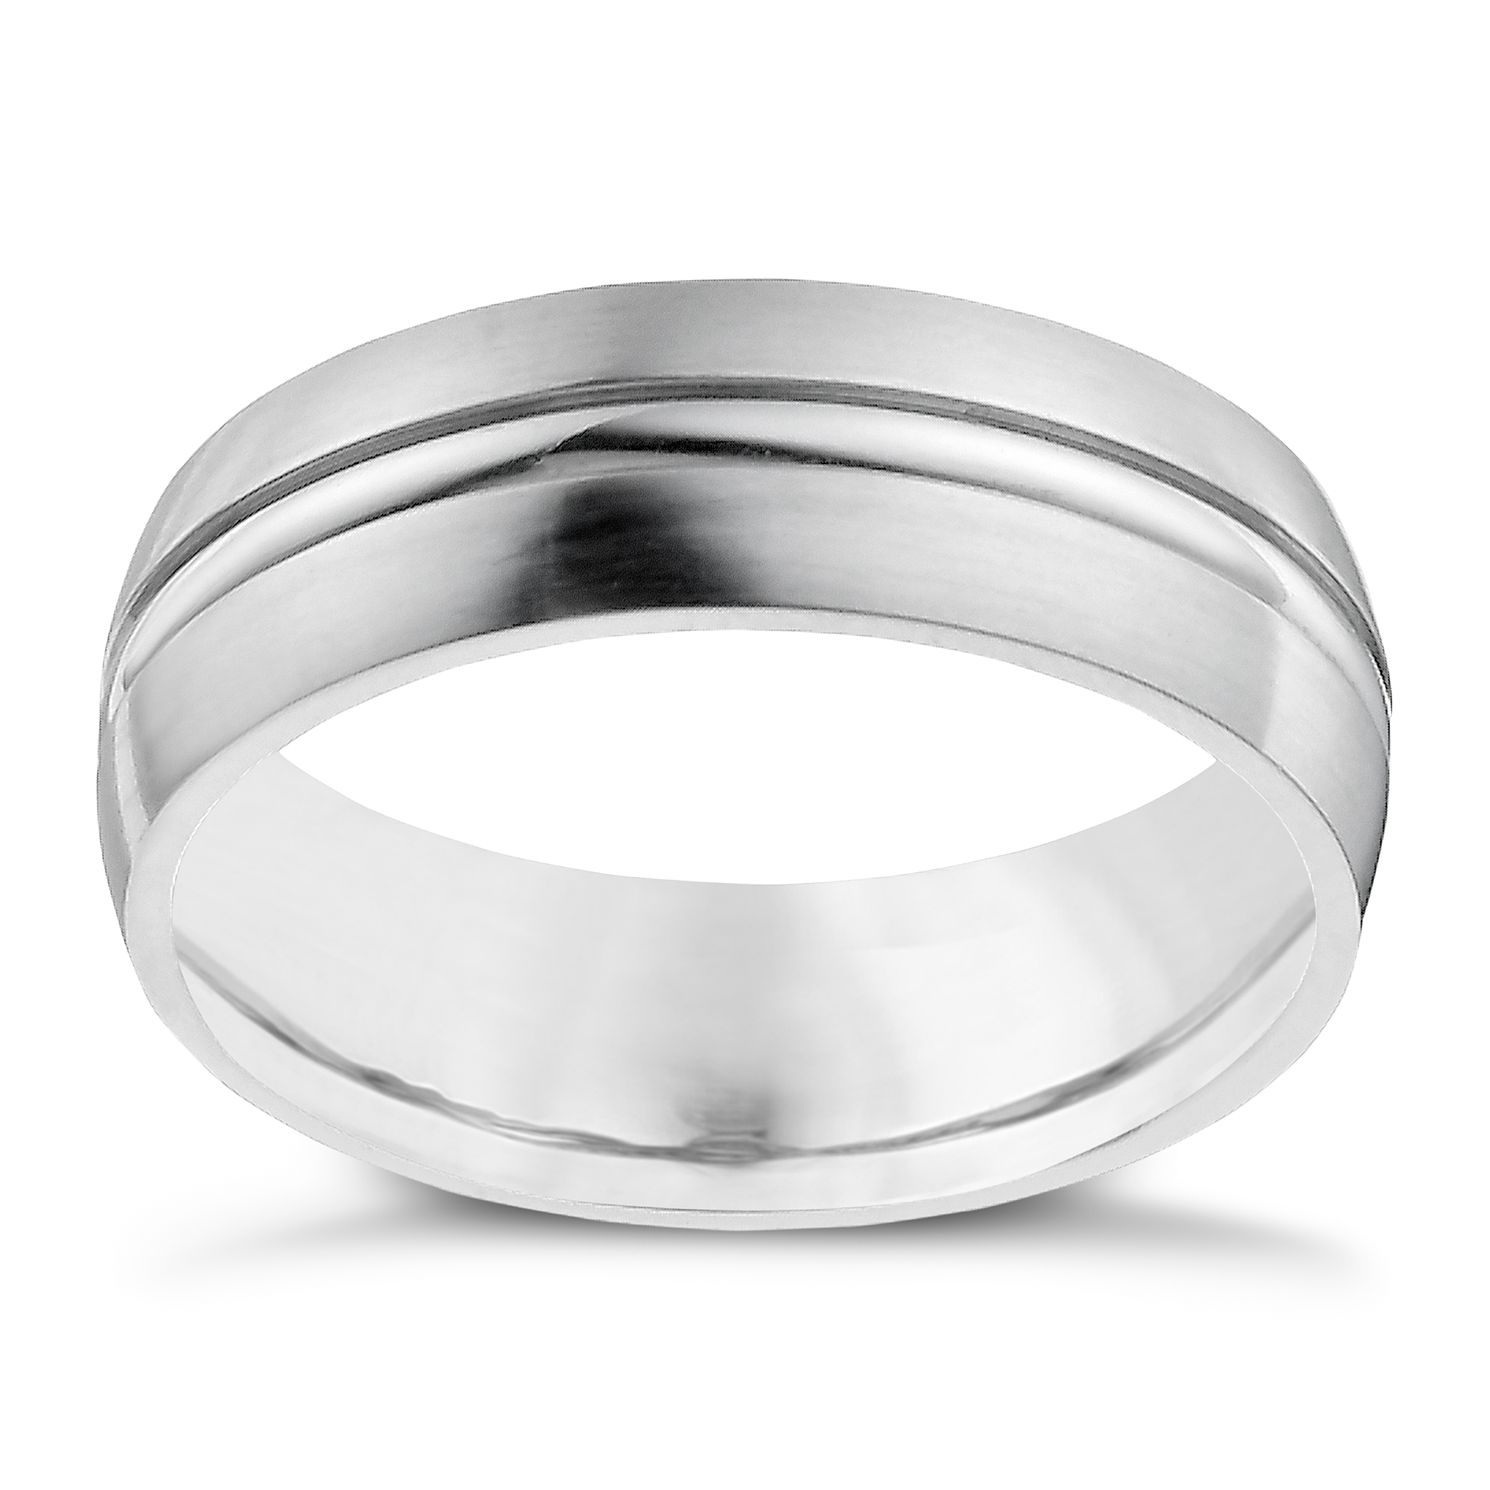 wedding cobalt mens charm centres rings s brushed men diamond white ring product